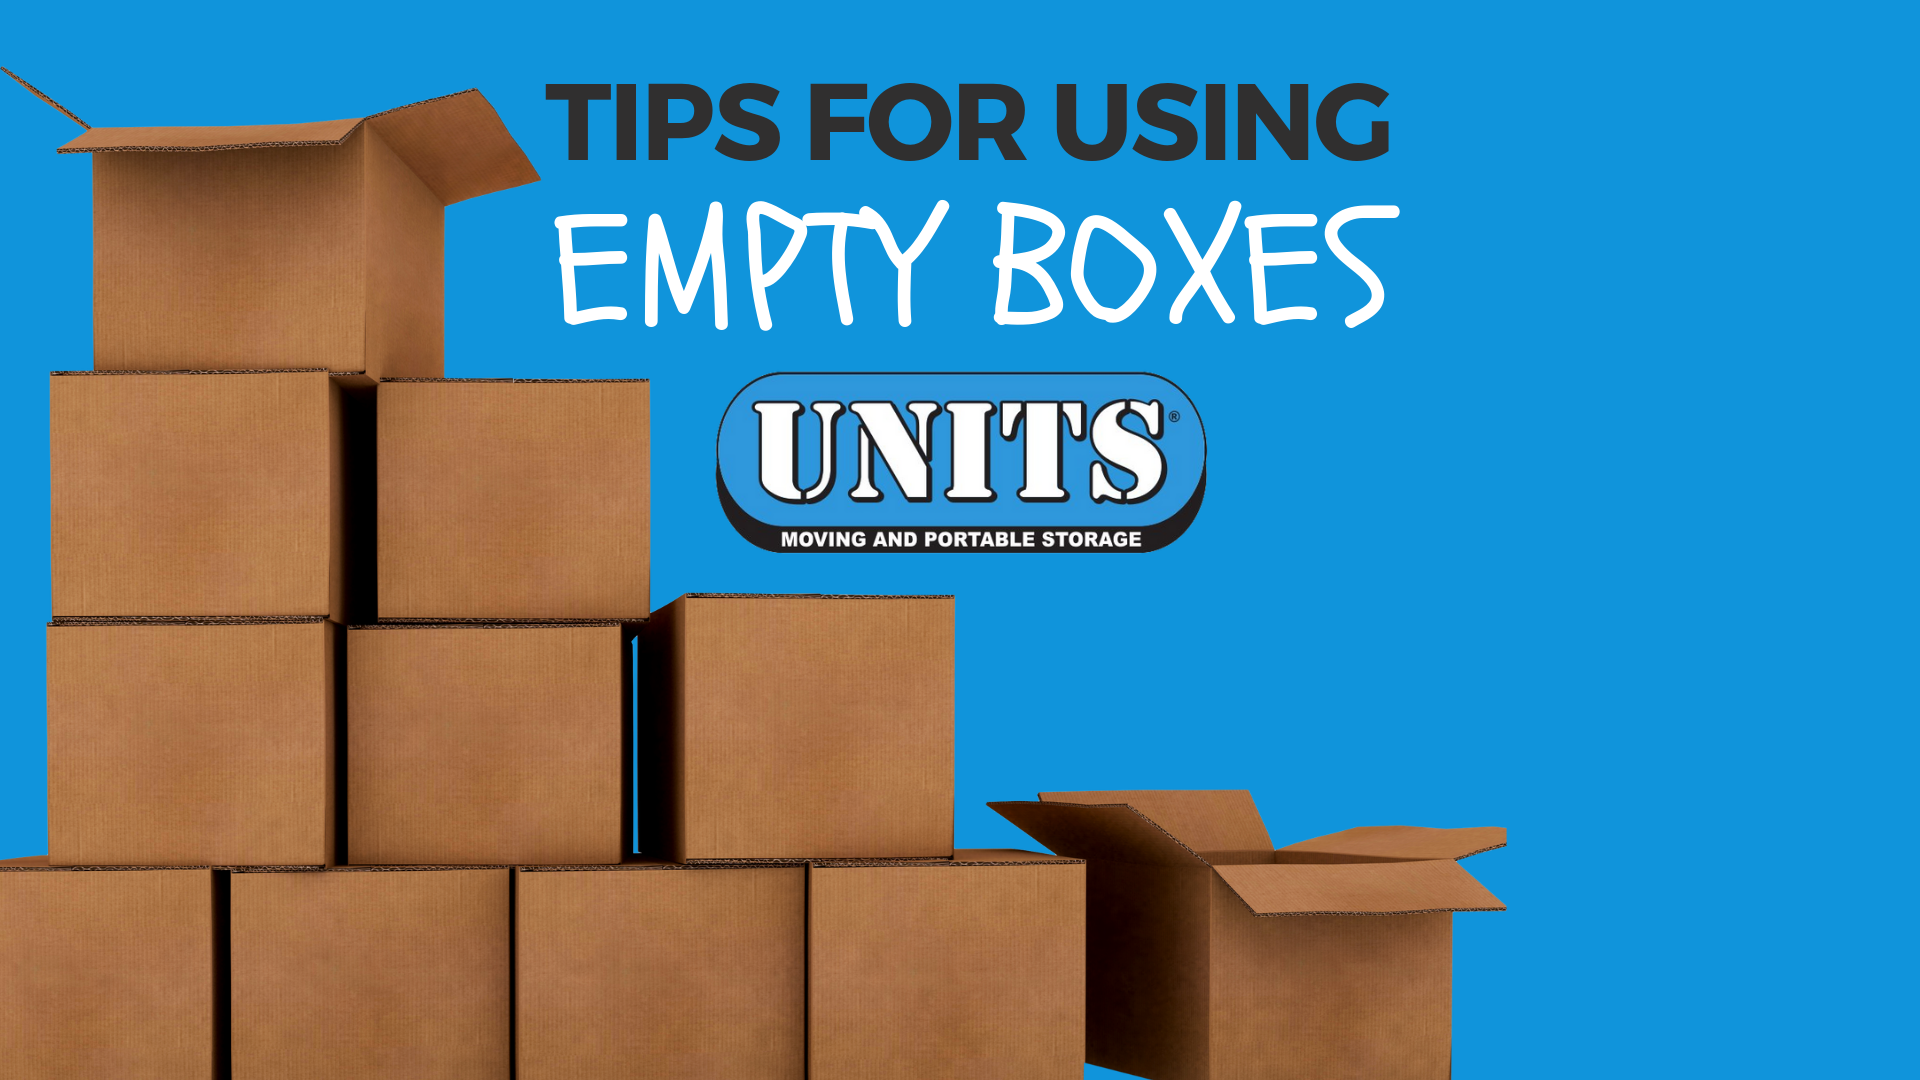 Tips for Using Empty Boxes